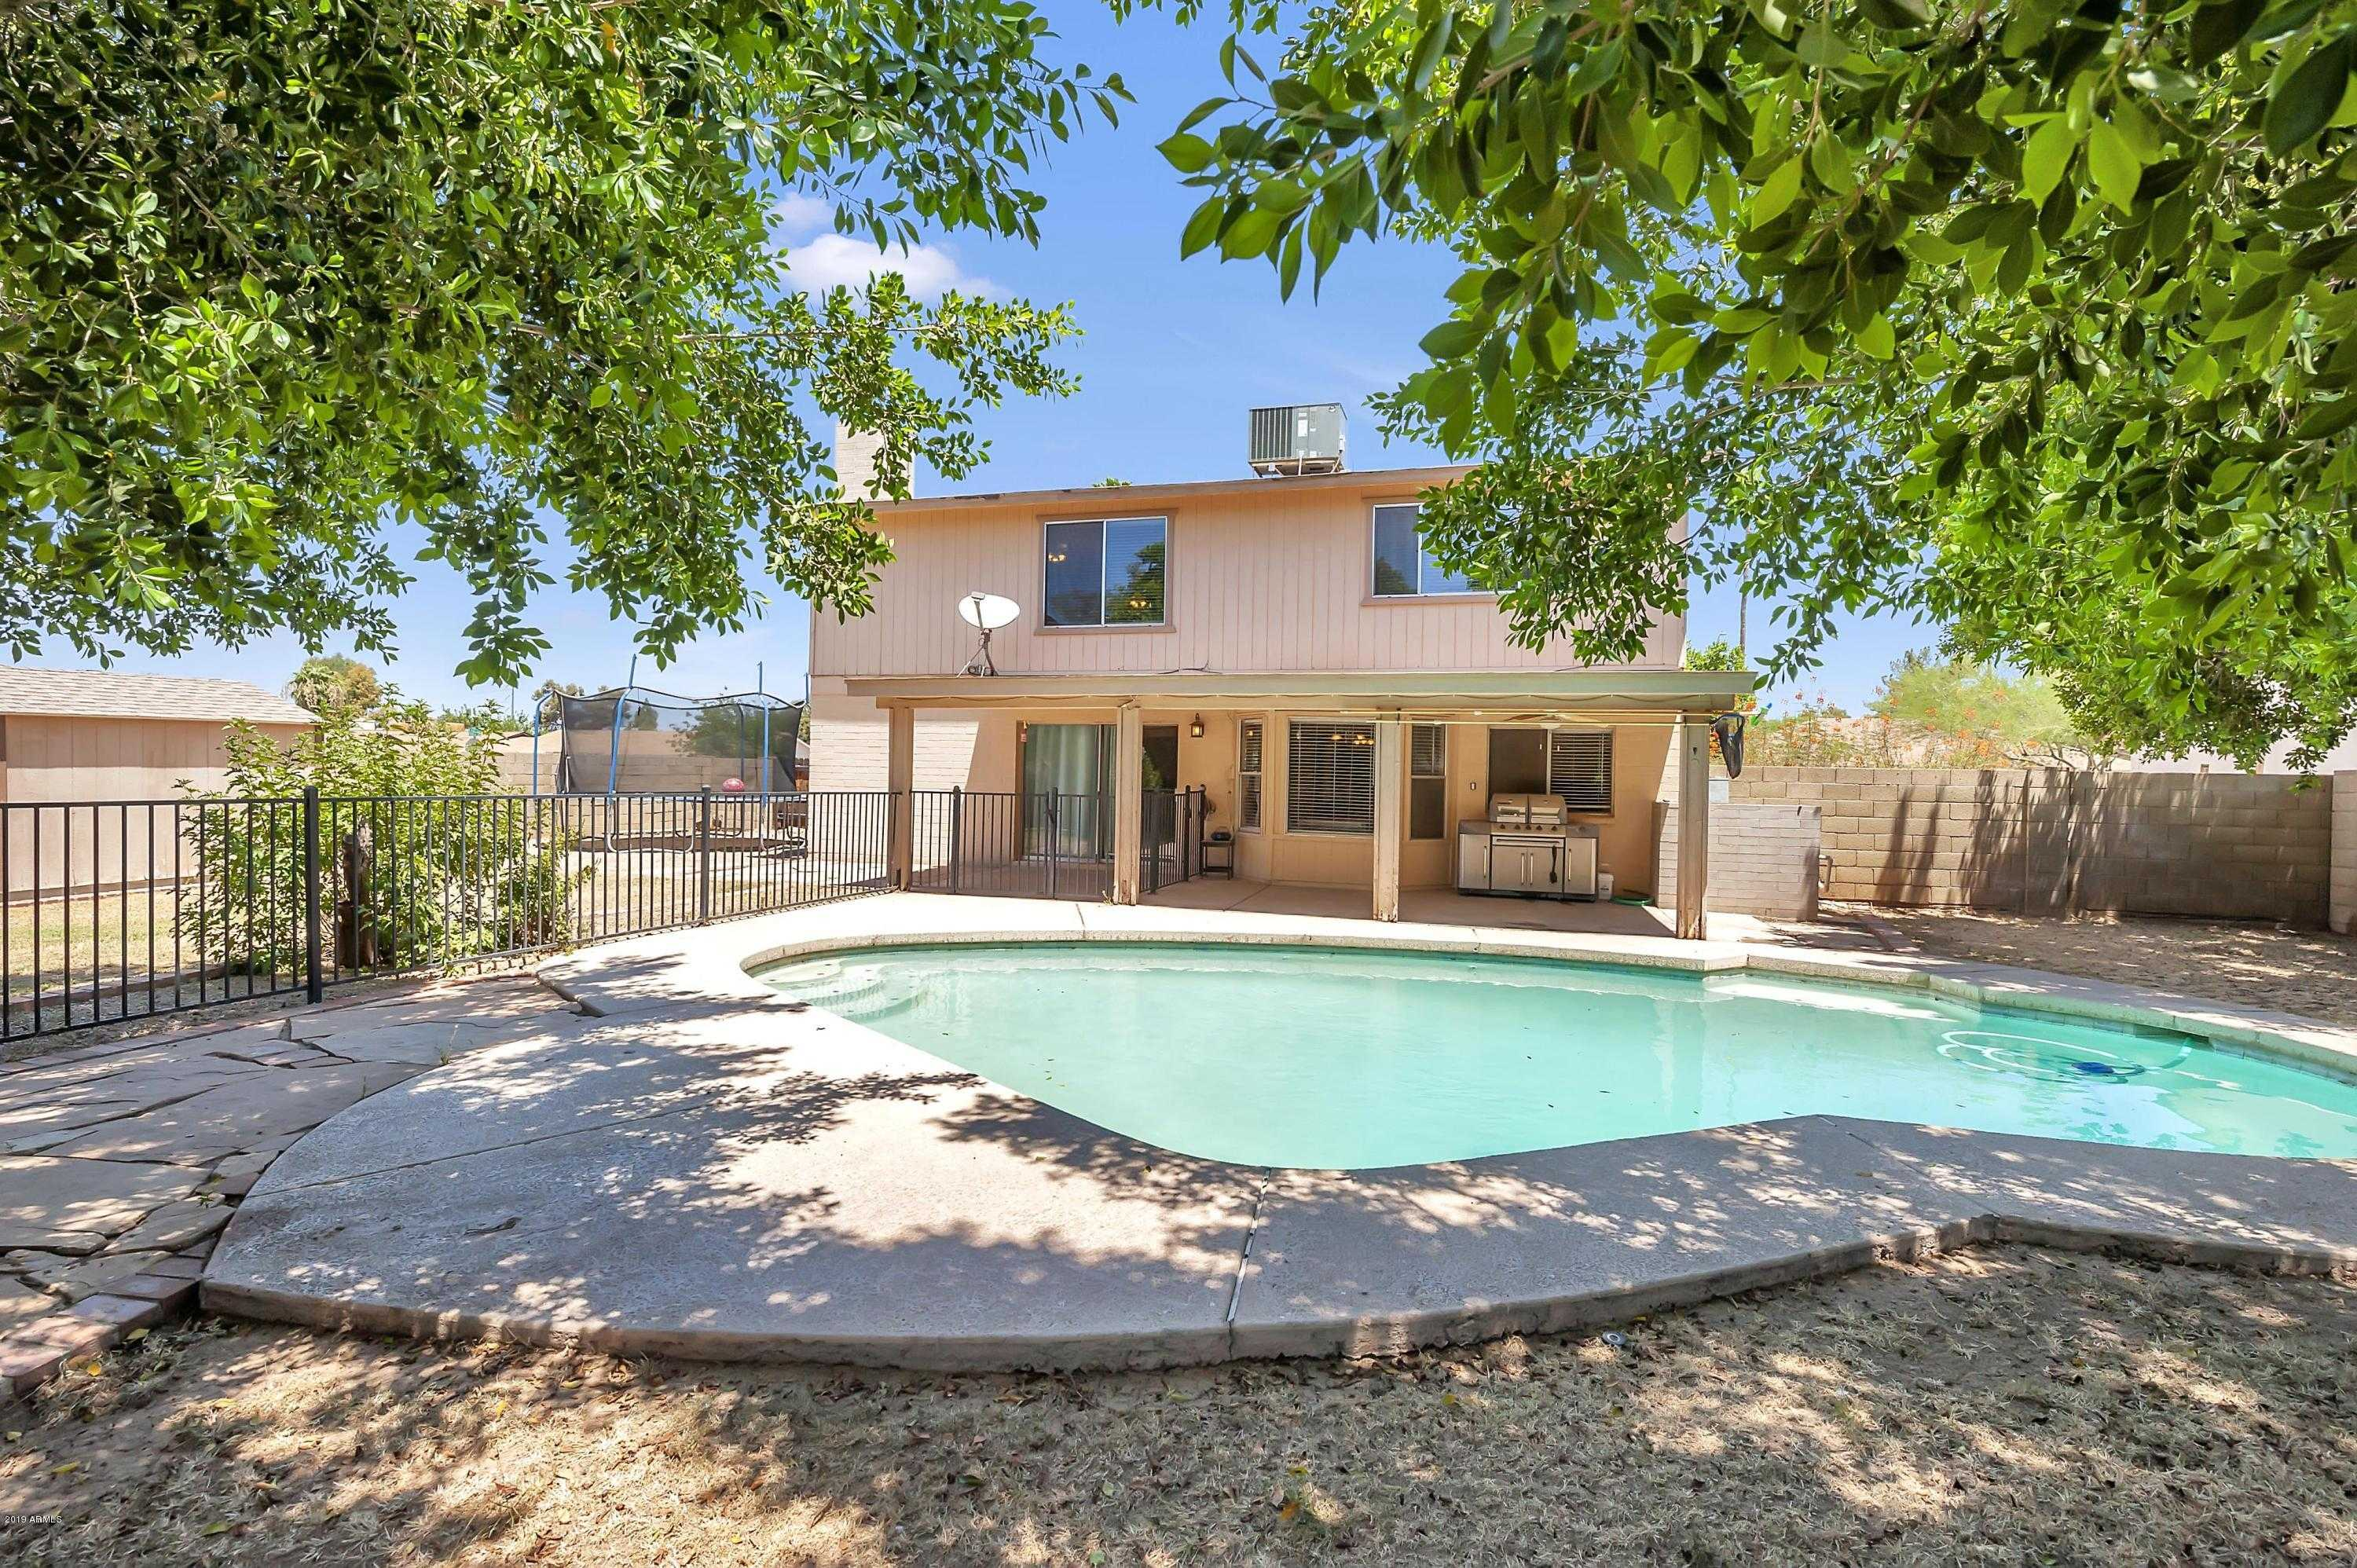 $314,900 - 4Br/3Ba - Home for Sale in Copperwood Unit 2 Lot 83-198, Glendale